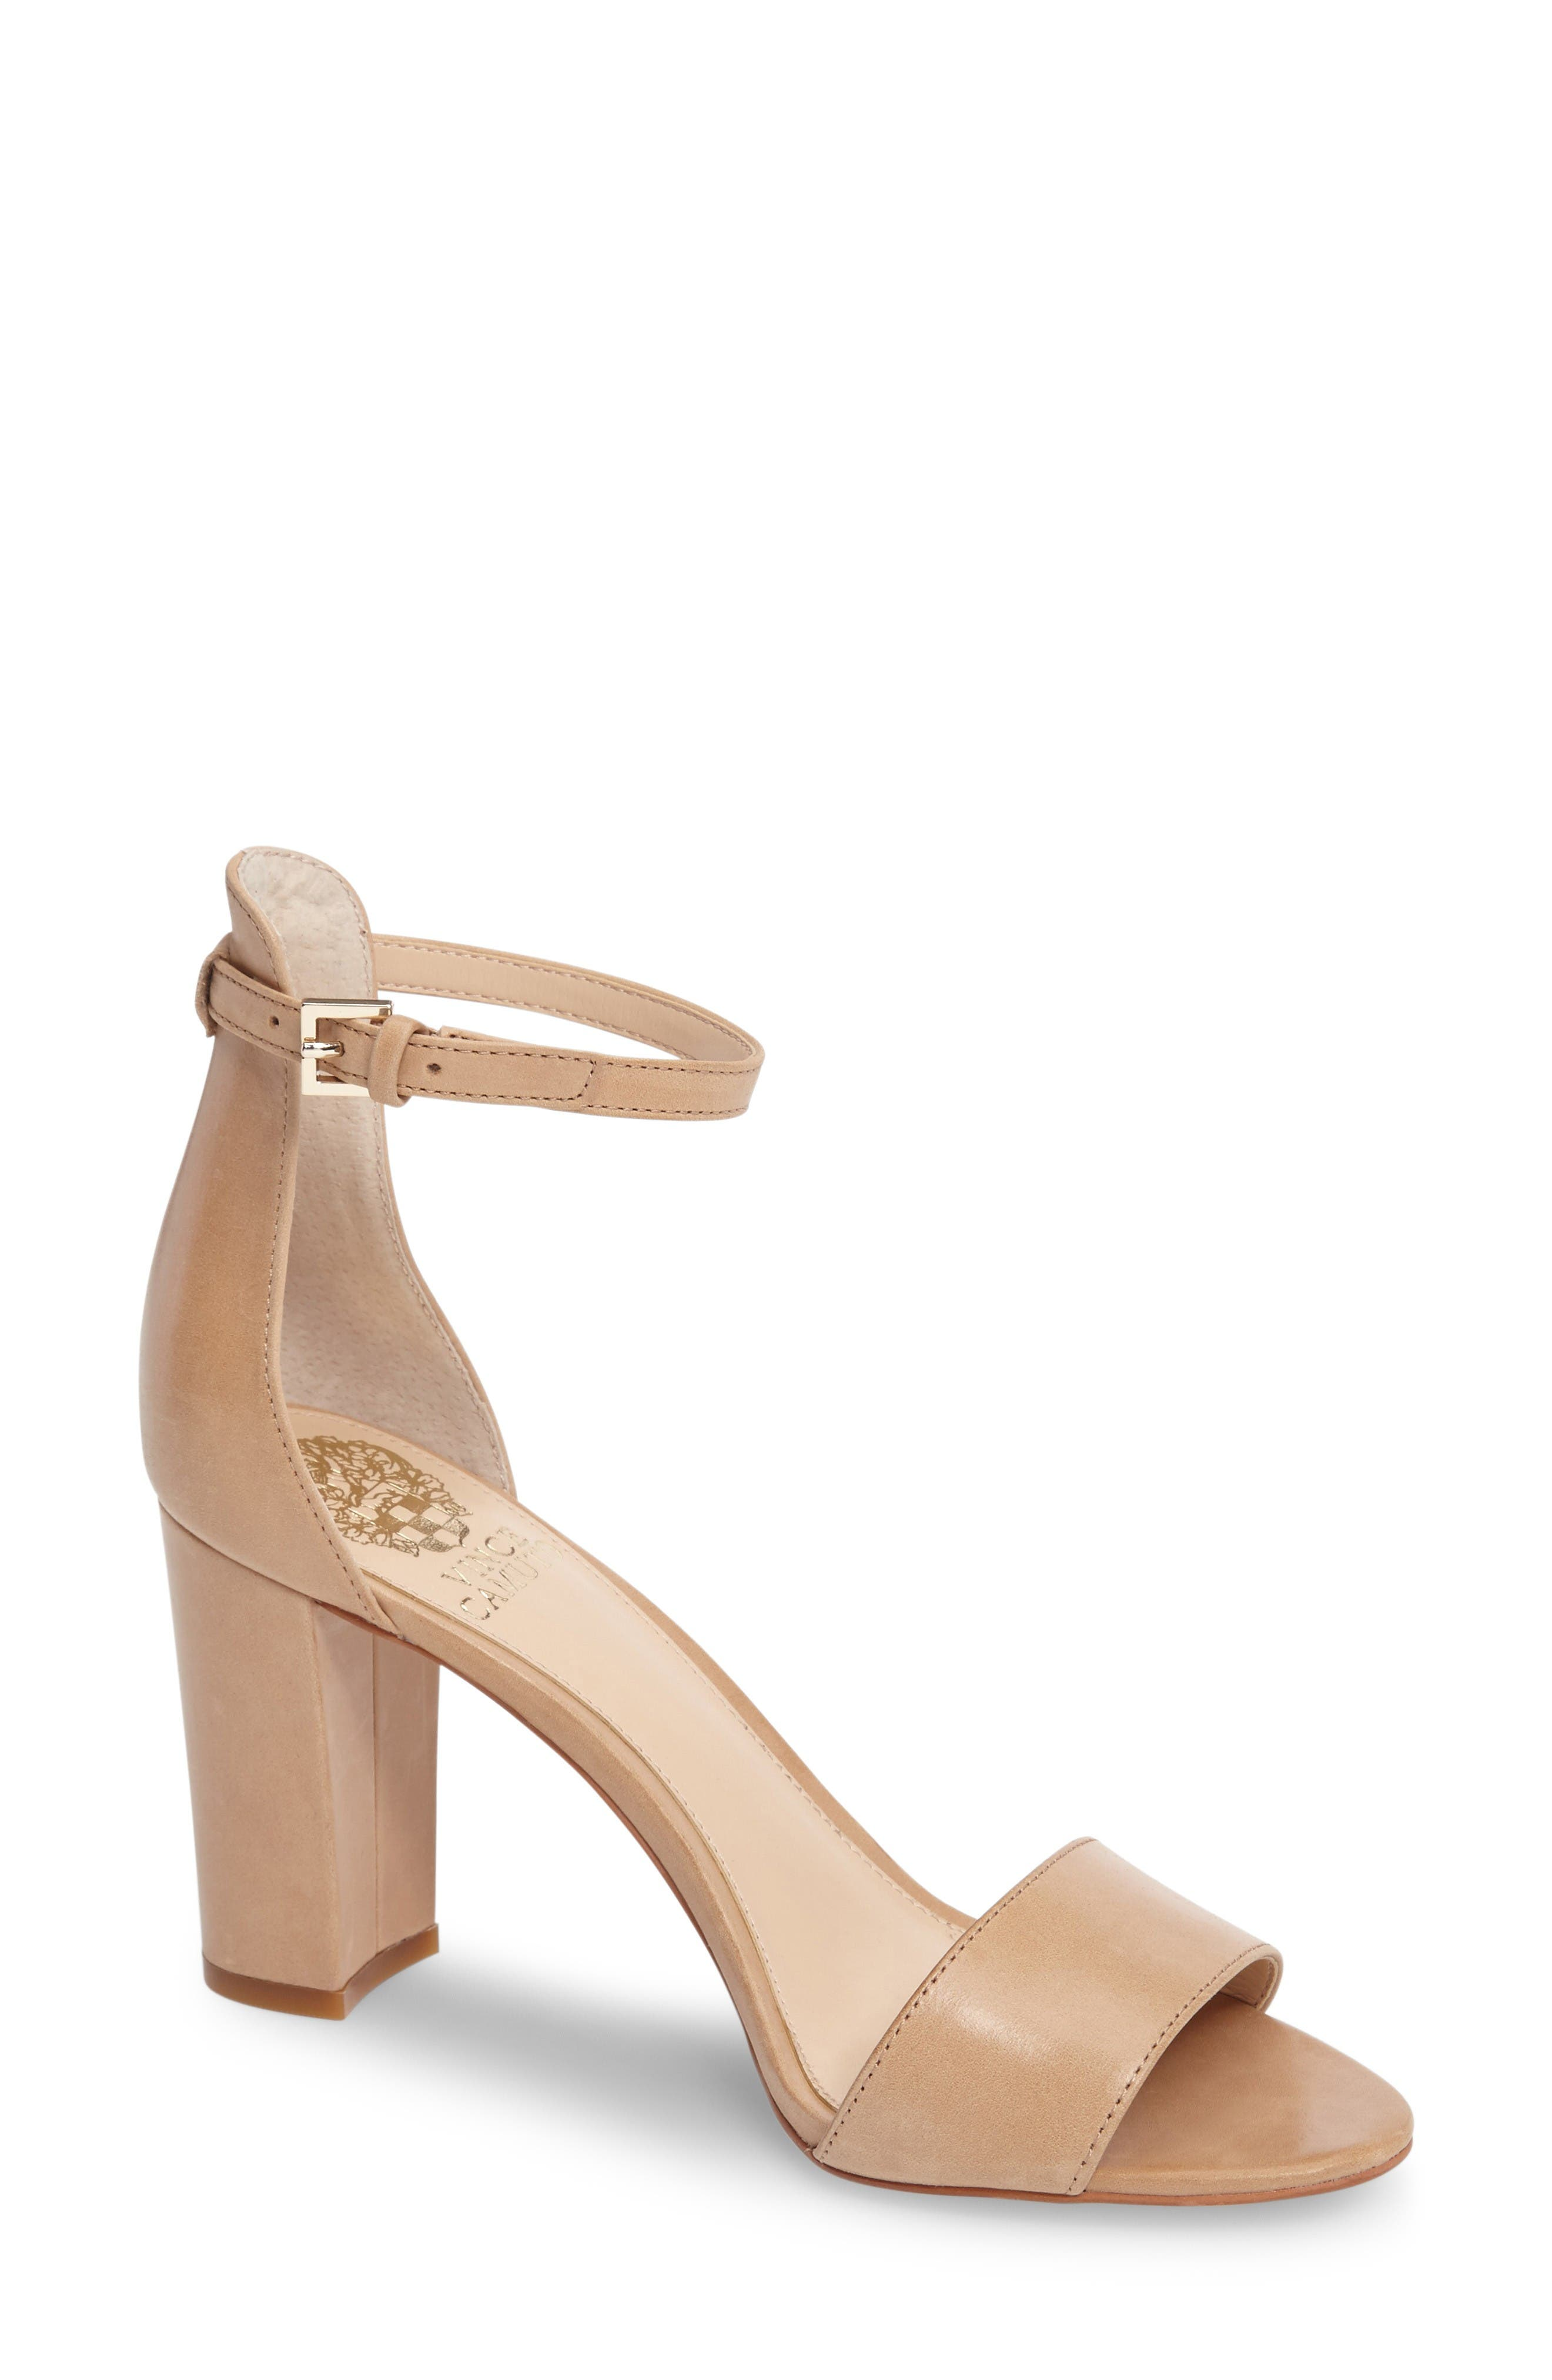 Vince Camuto Corlina Ankle Strap Sandal (Women) (Nordstrom Exclusive)